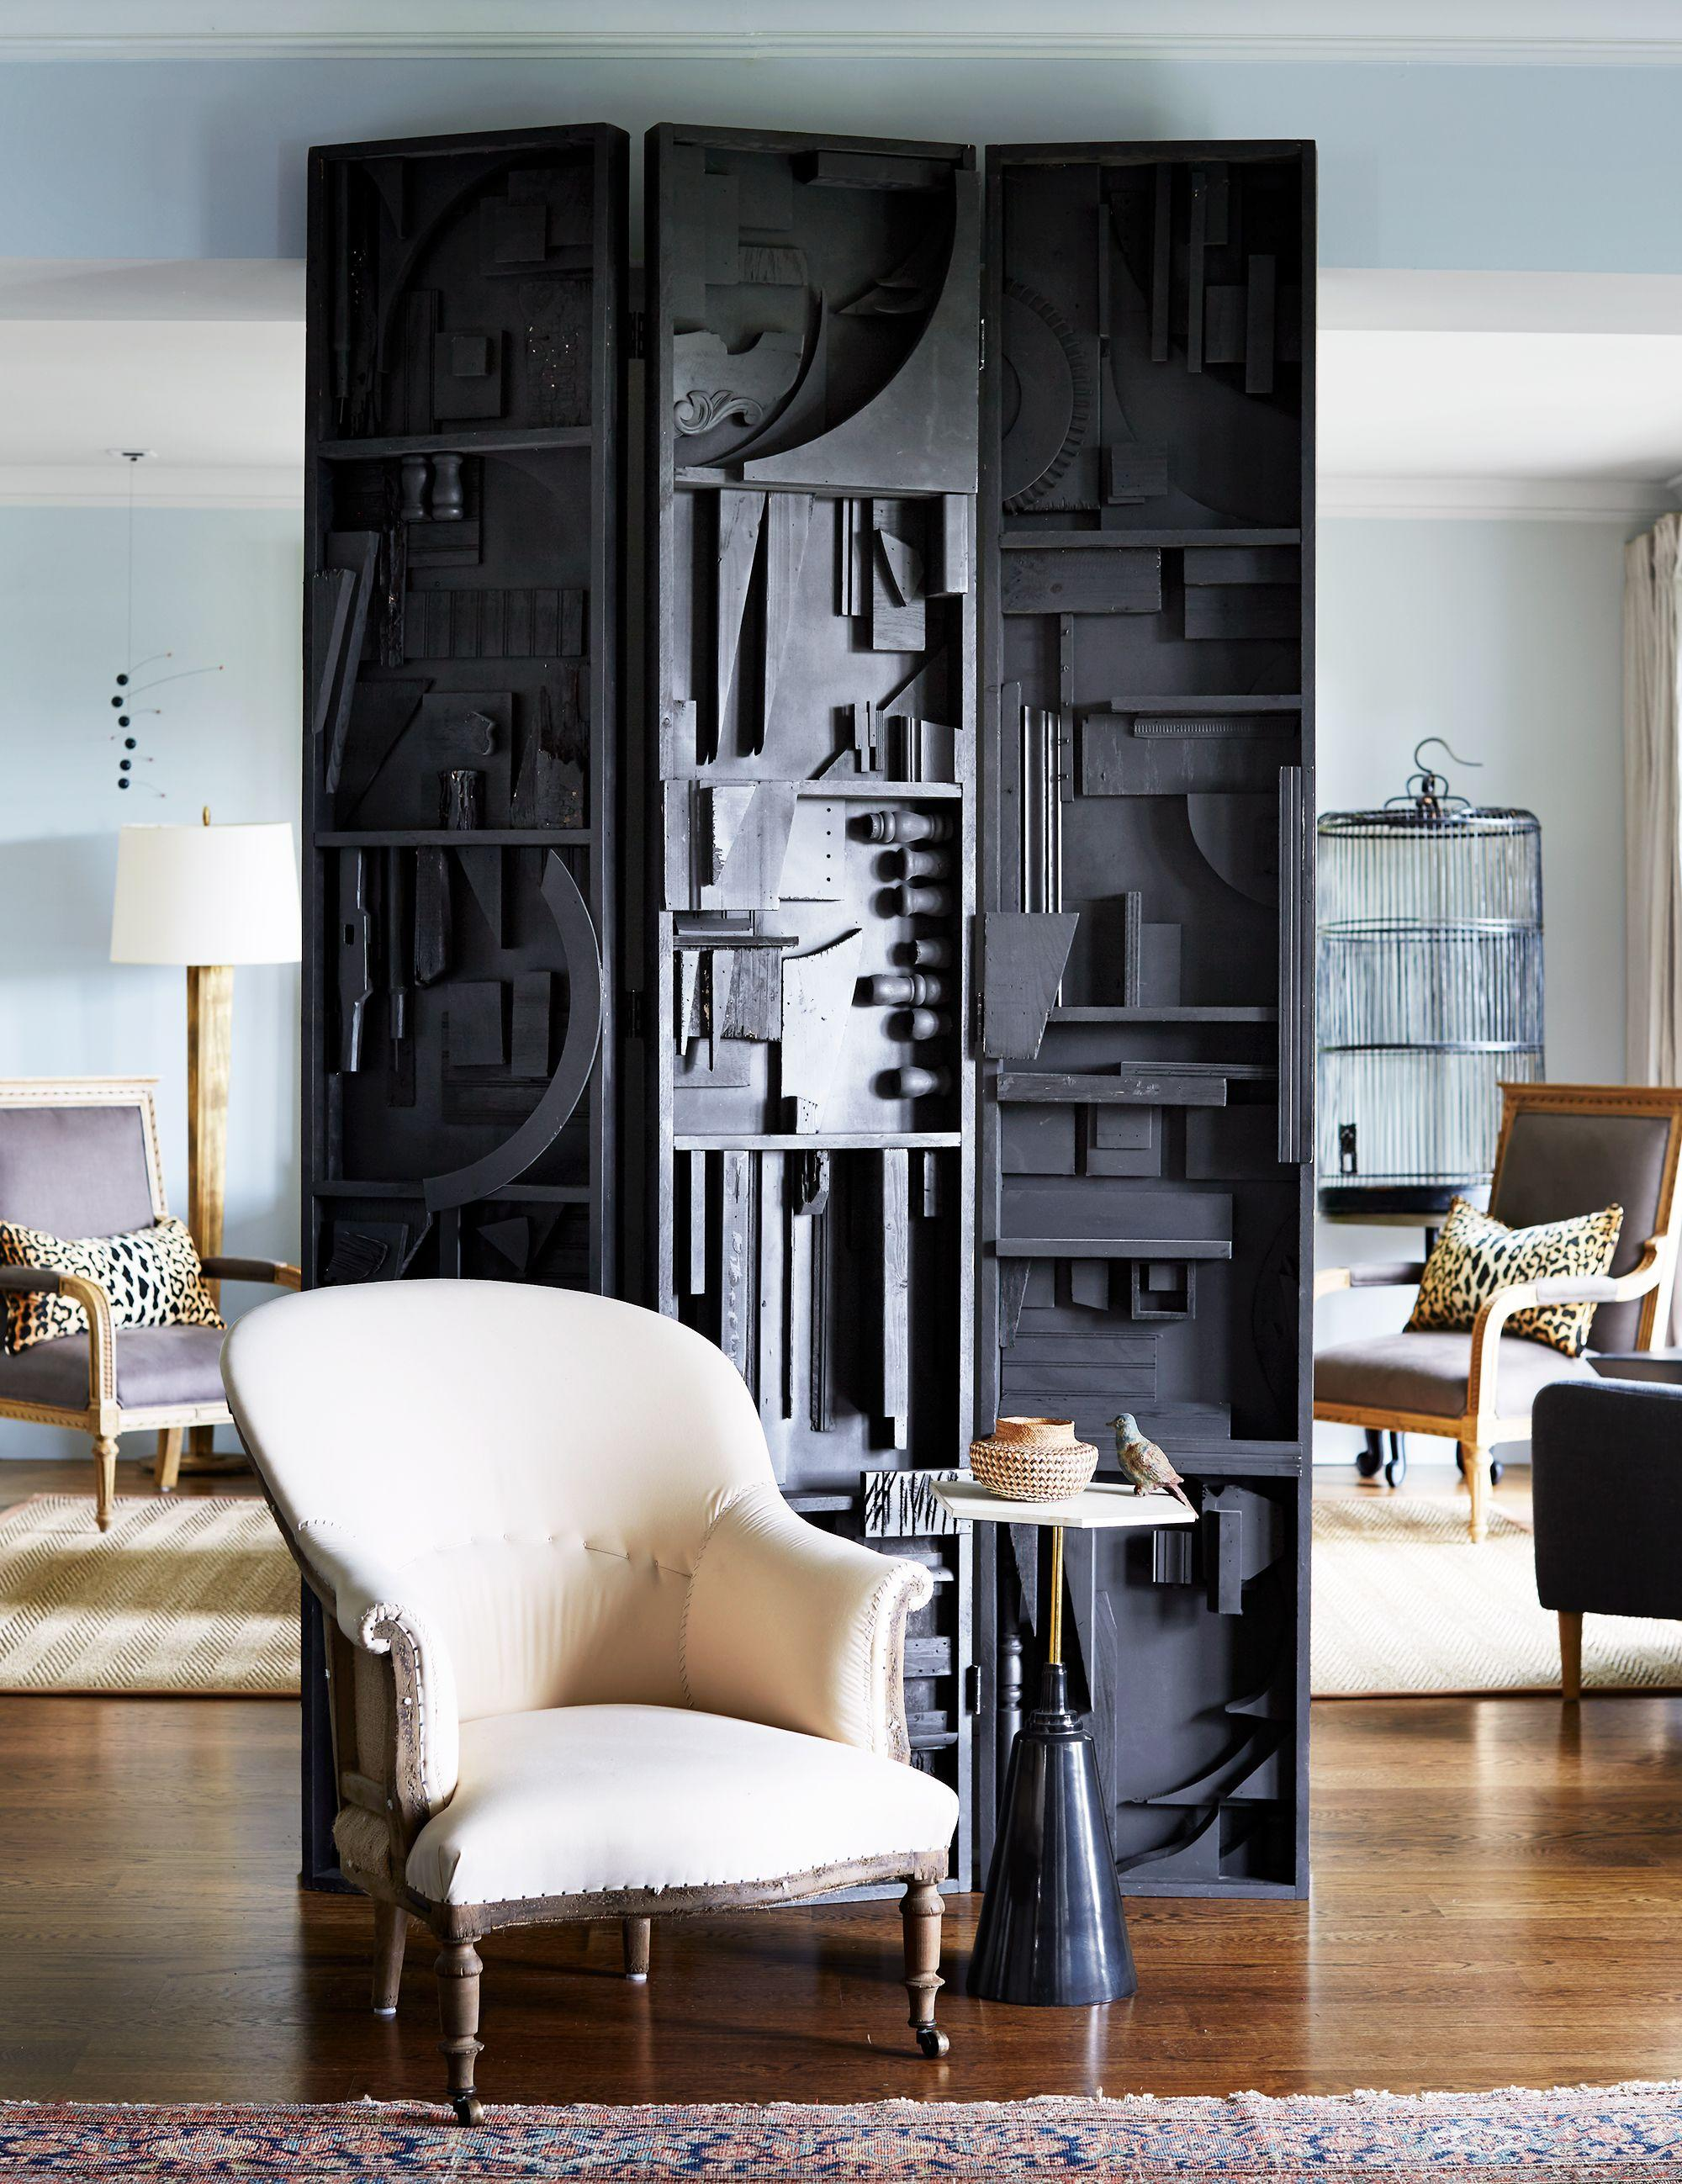 Designer Room Dividers: These Simple Room Divider Ideas Are Seriously Transformative